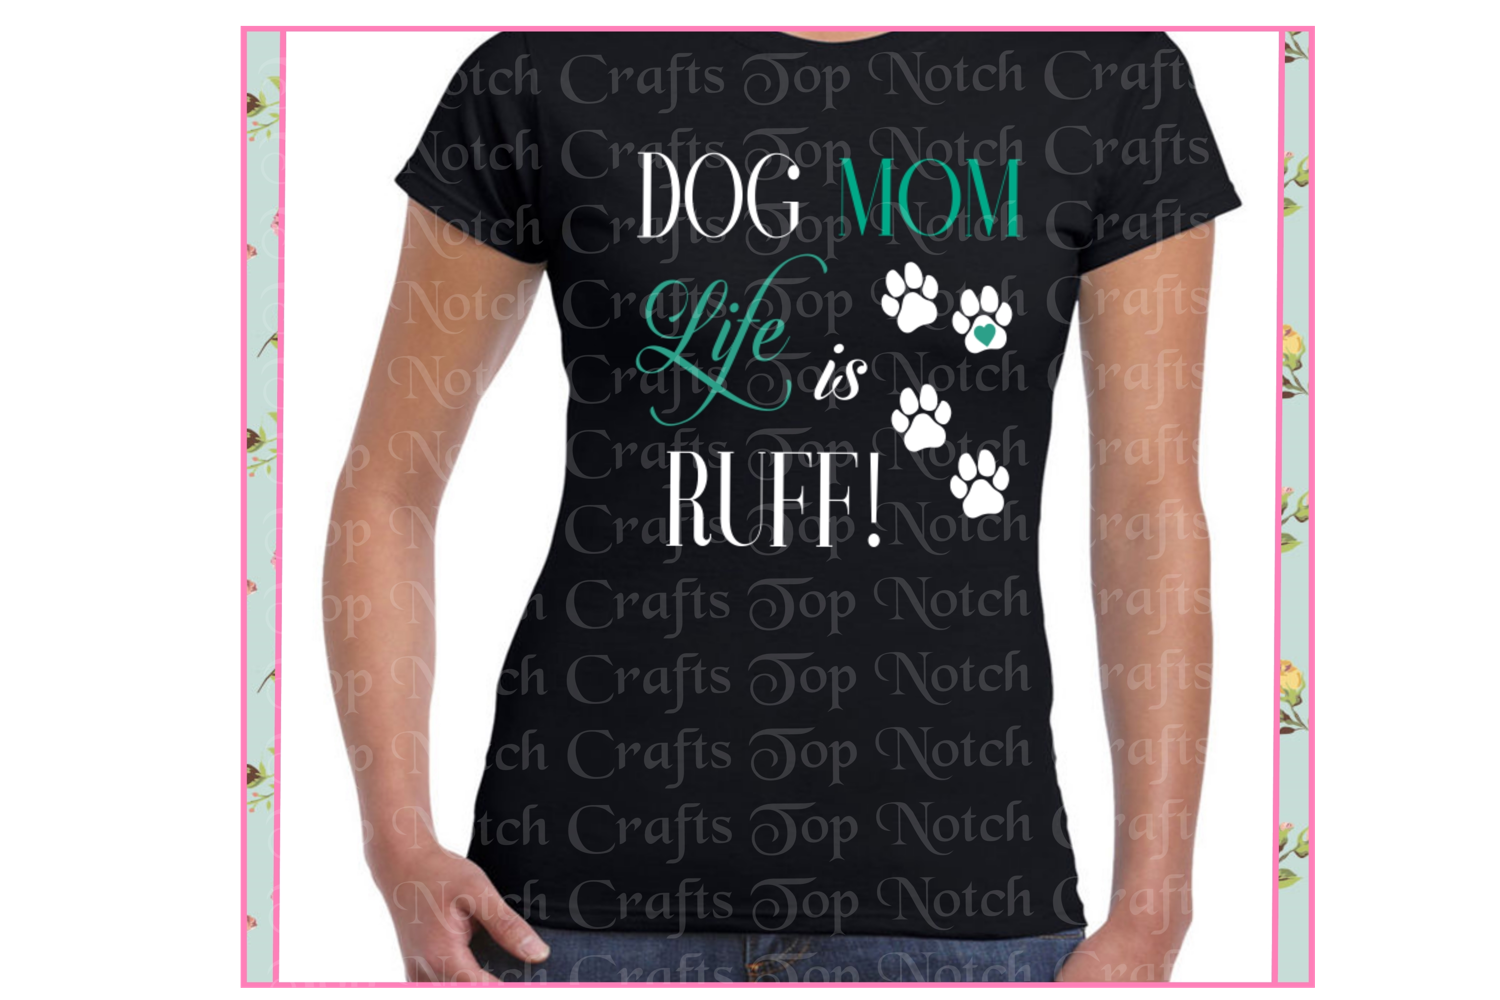 Dog Mom Life is Ruff Design File, example image 4